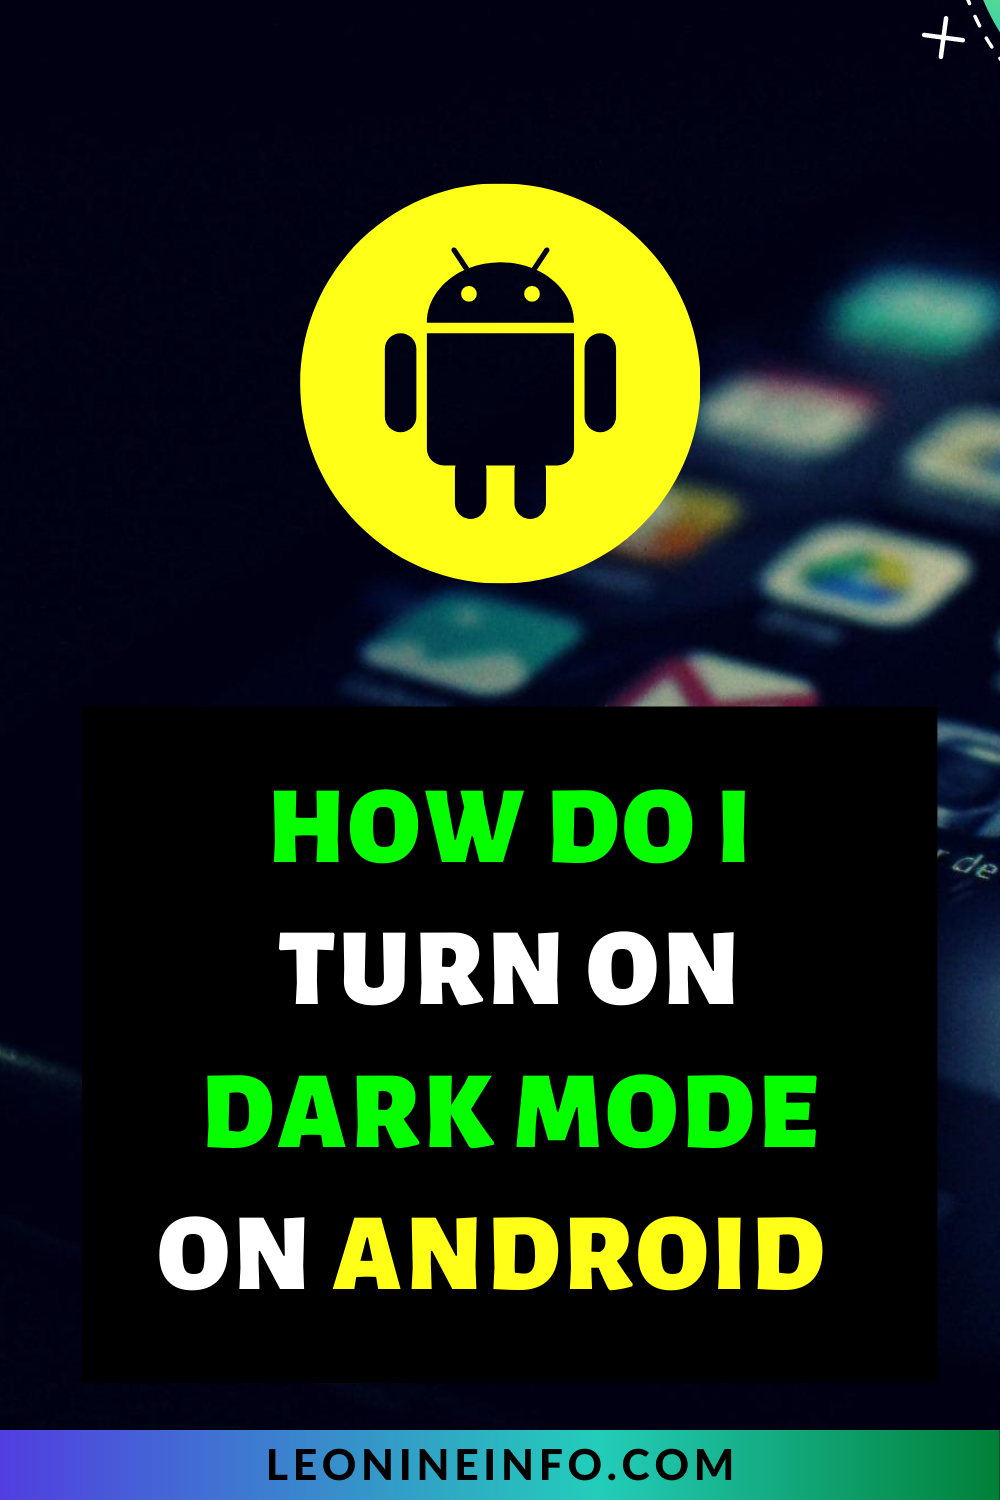 How do i turn on Dark mode on android? #android #darkmode